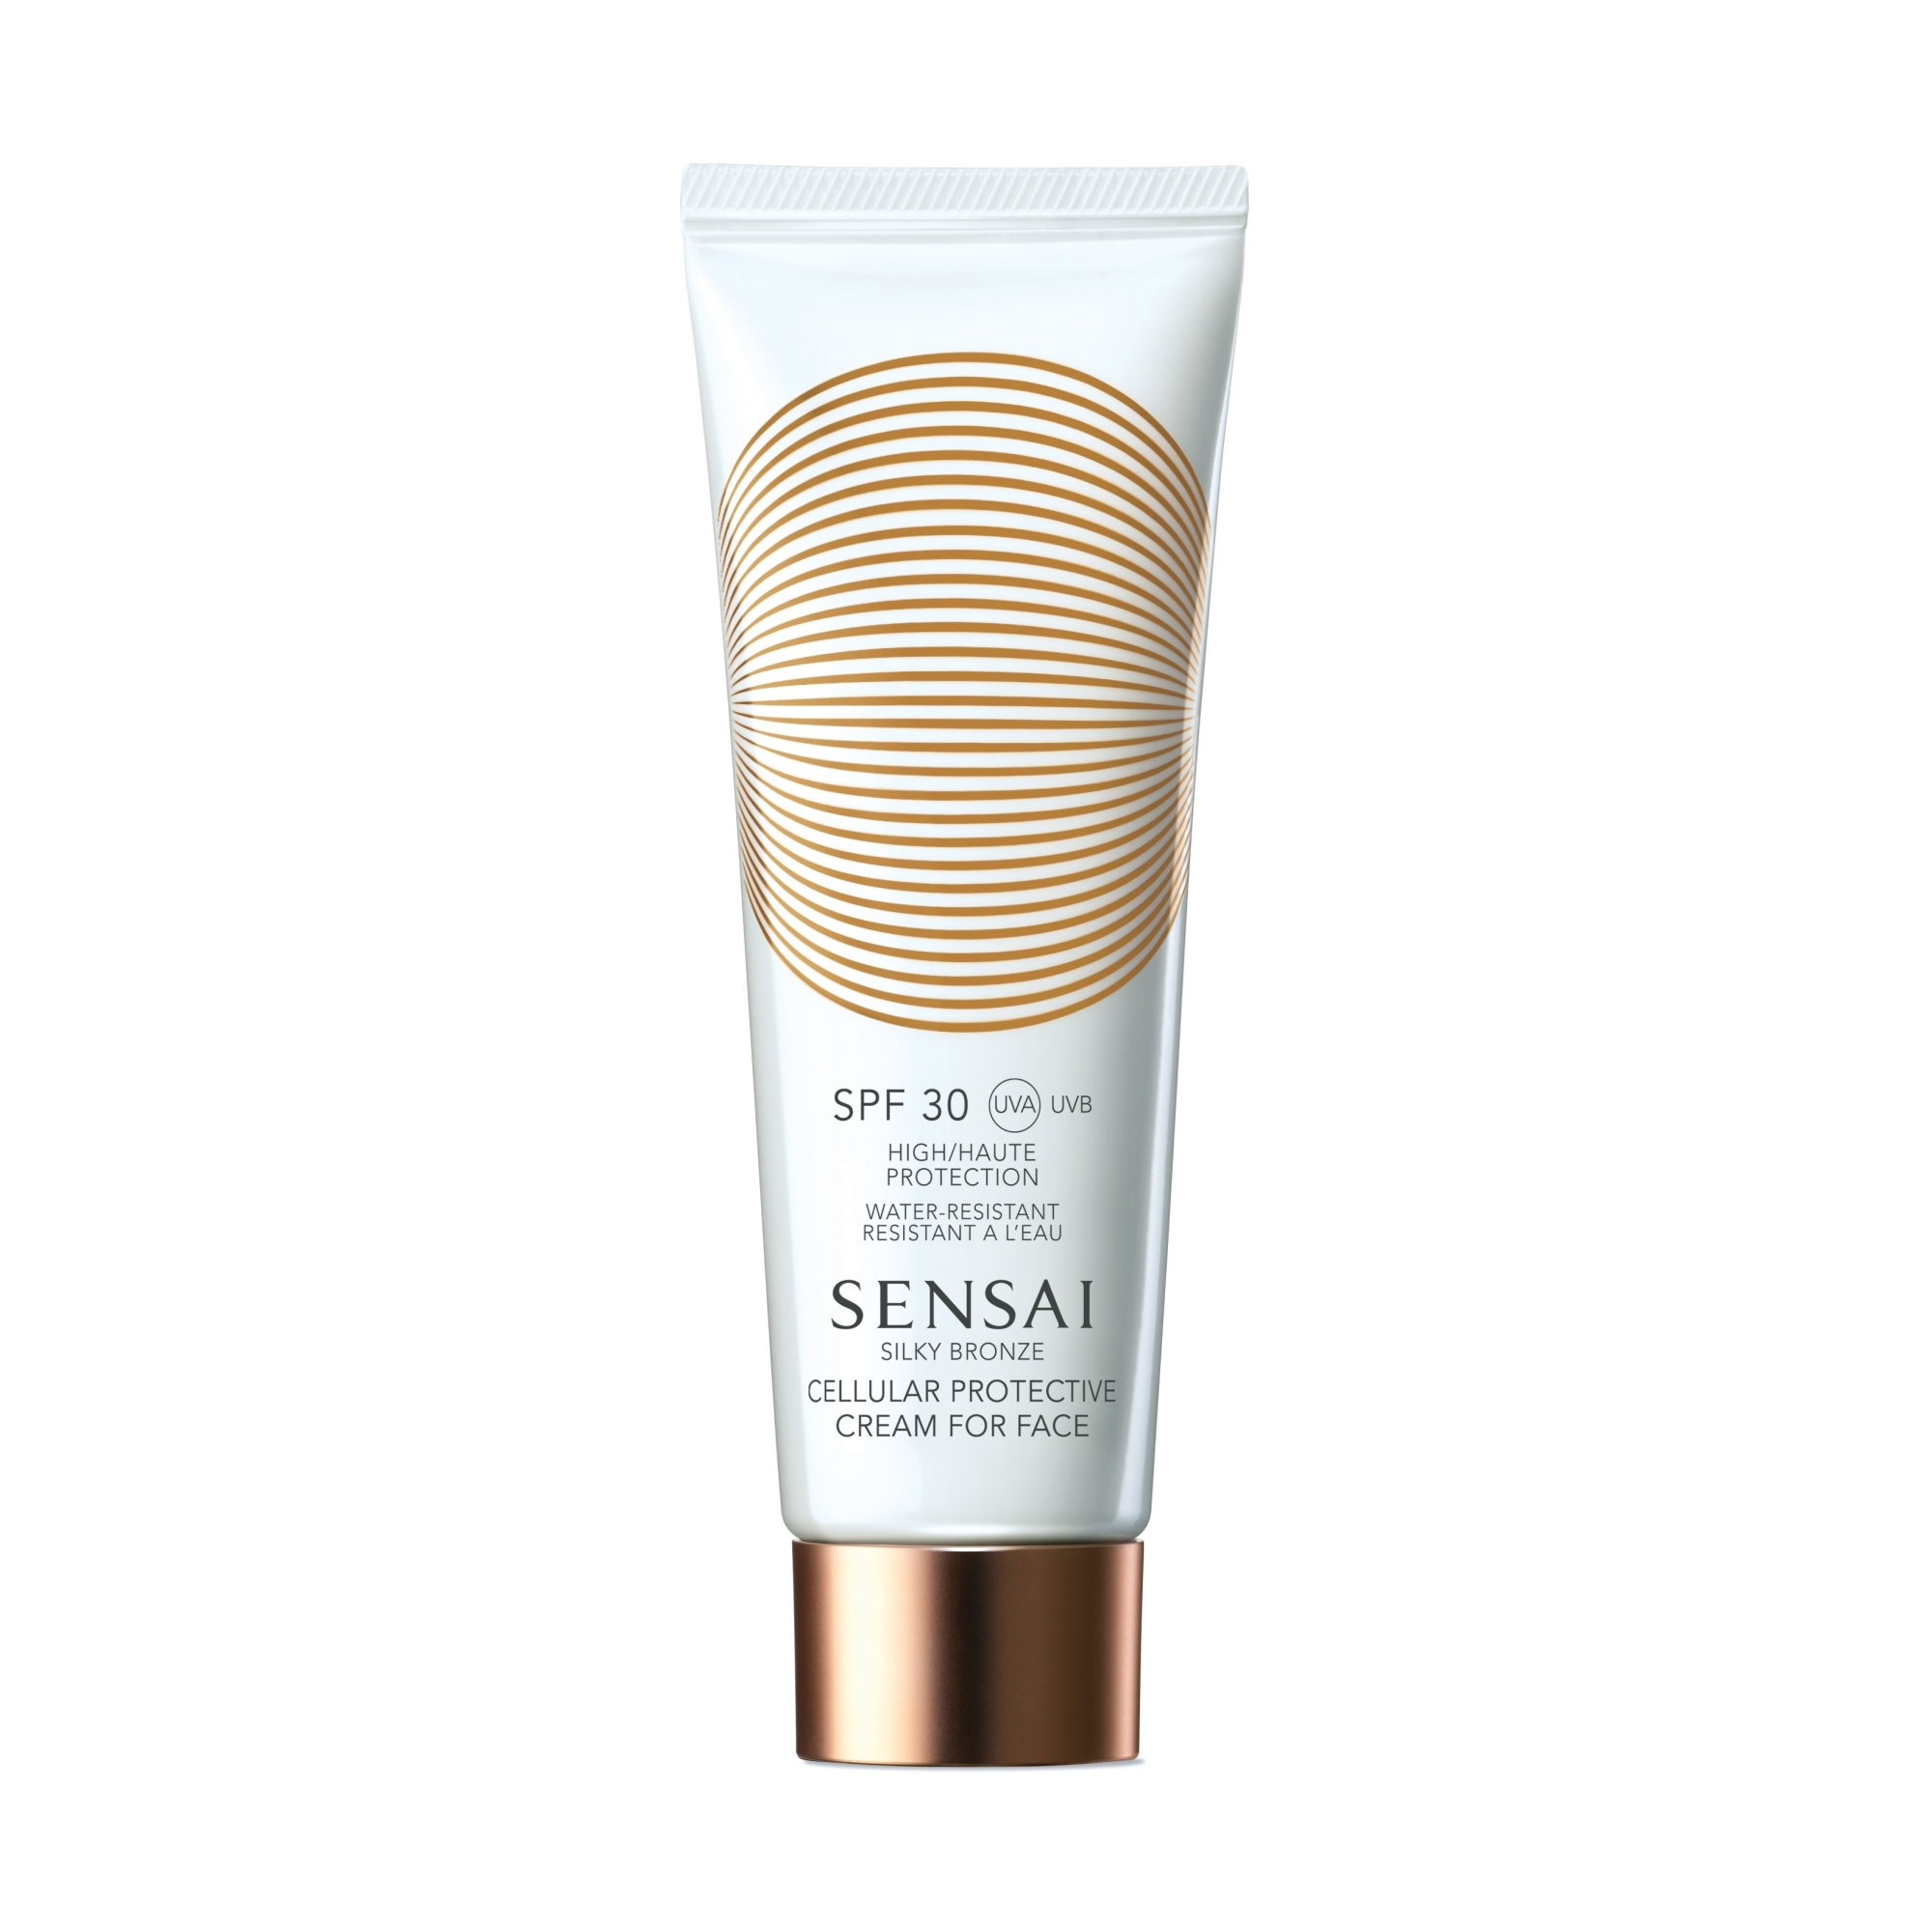 Silky Bronze Protective Cream for Face SPF 30